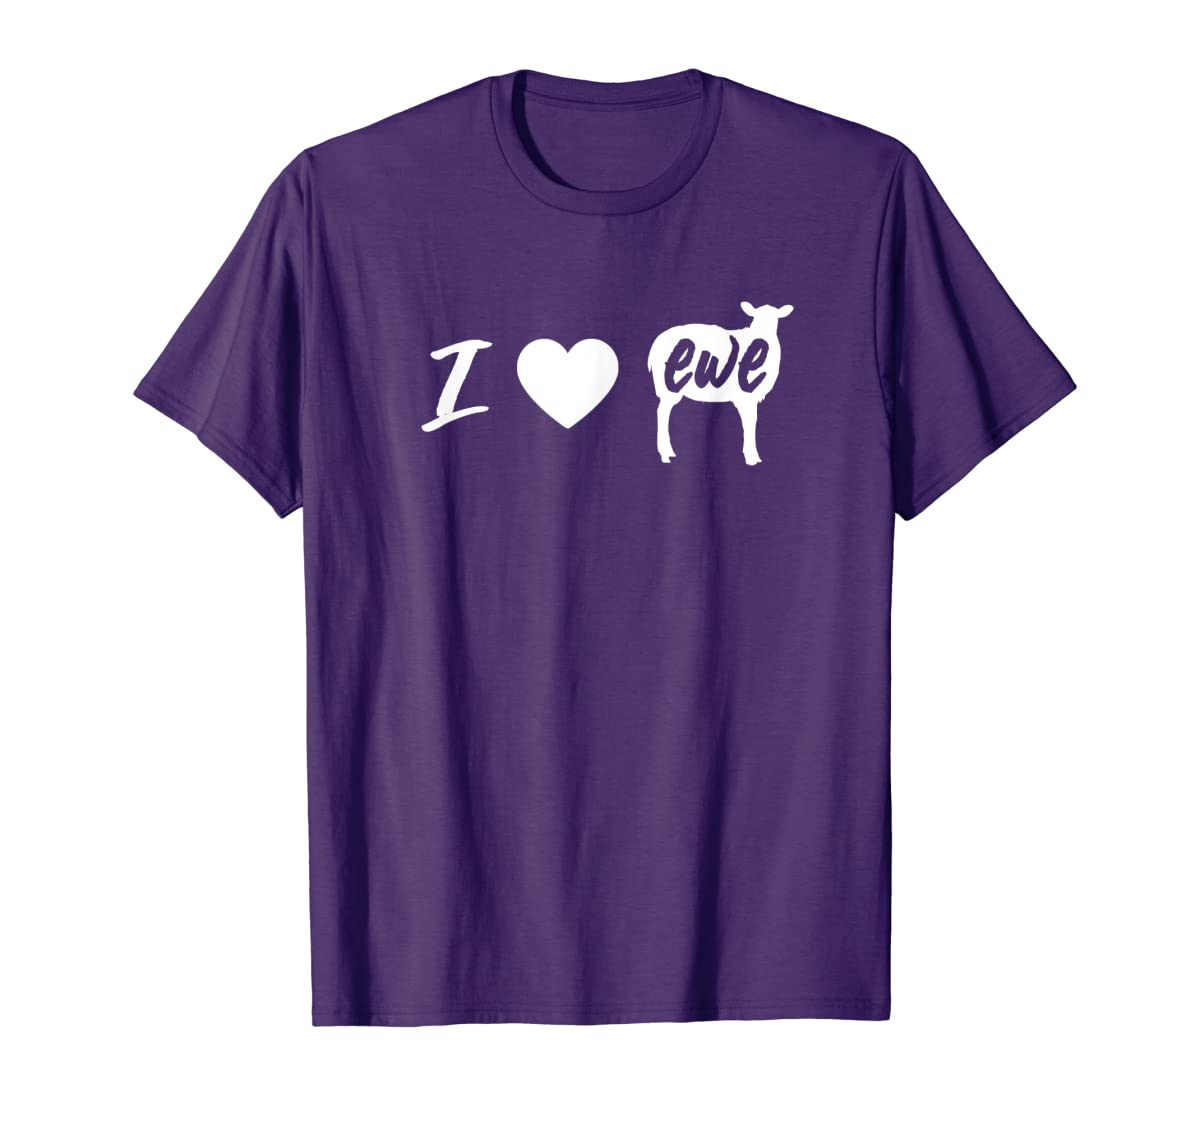 I Love Ewe - I Love You Sheep Pun Shirt-Men's T-Shirt-Purple